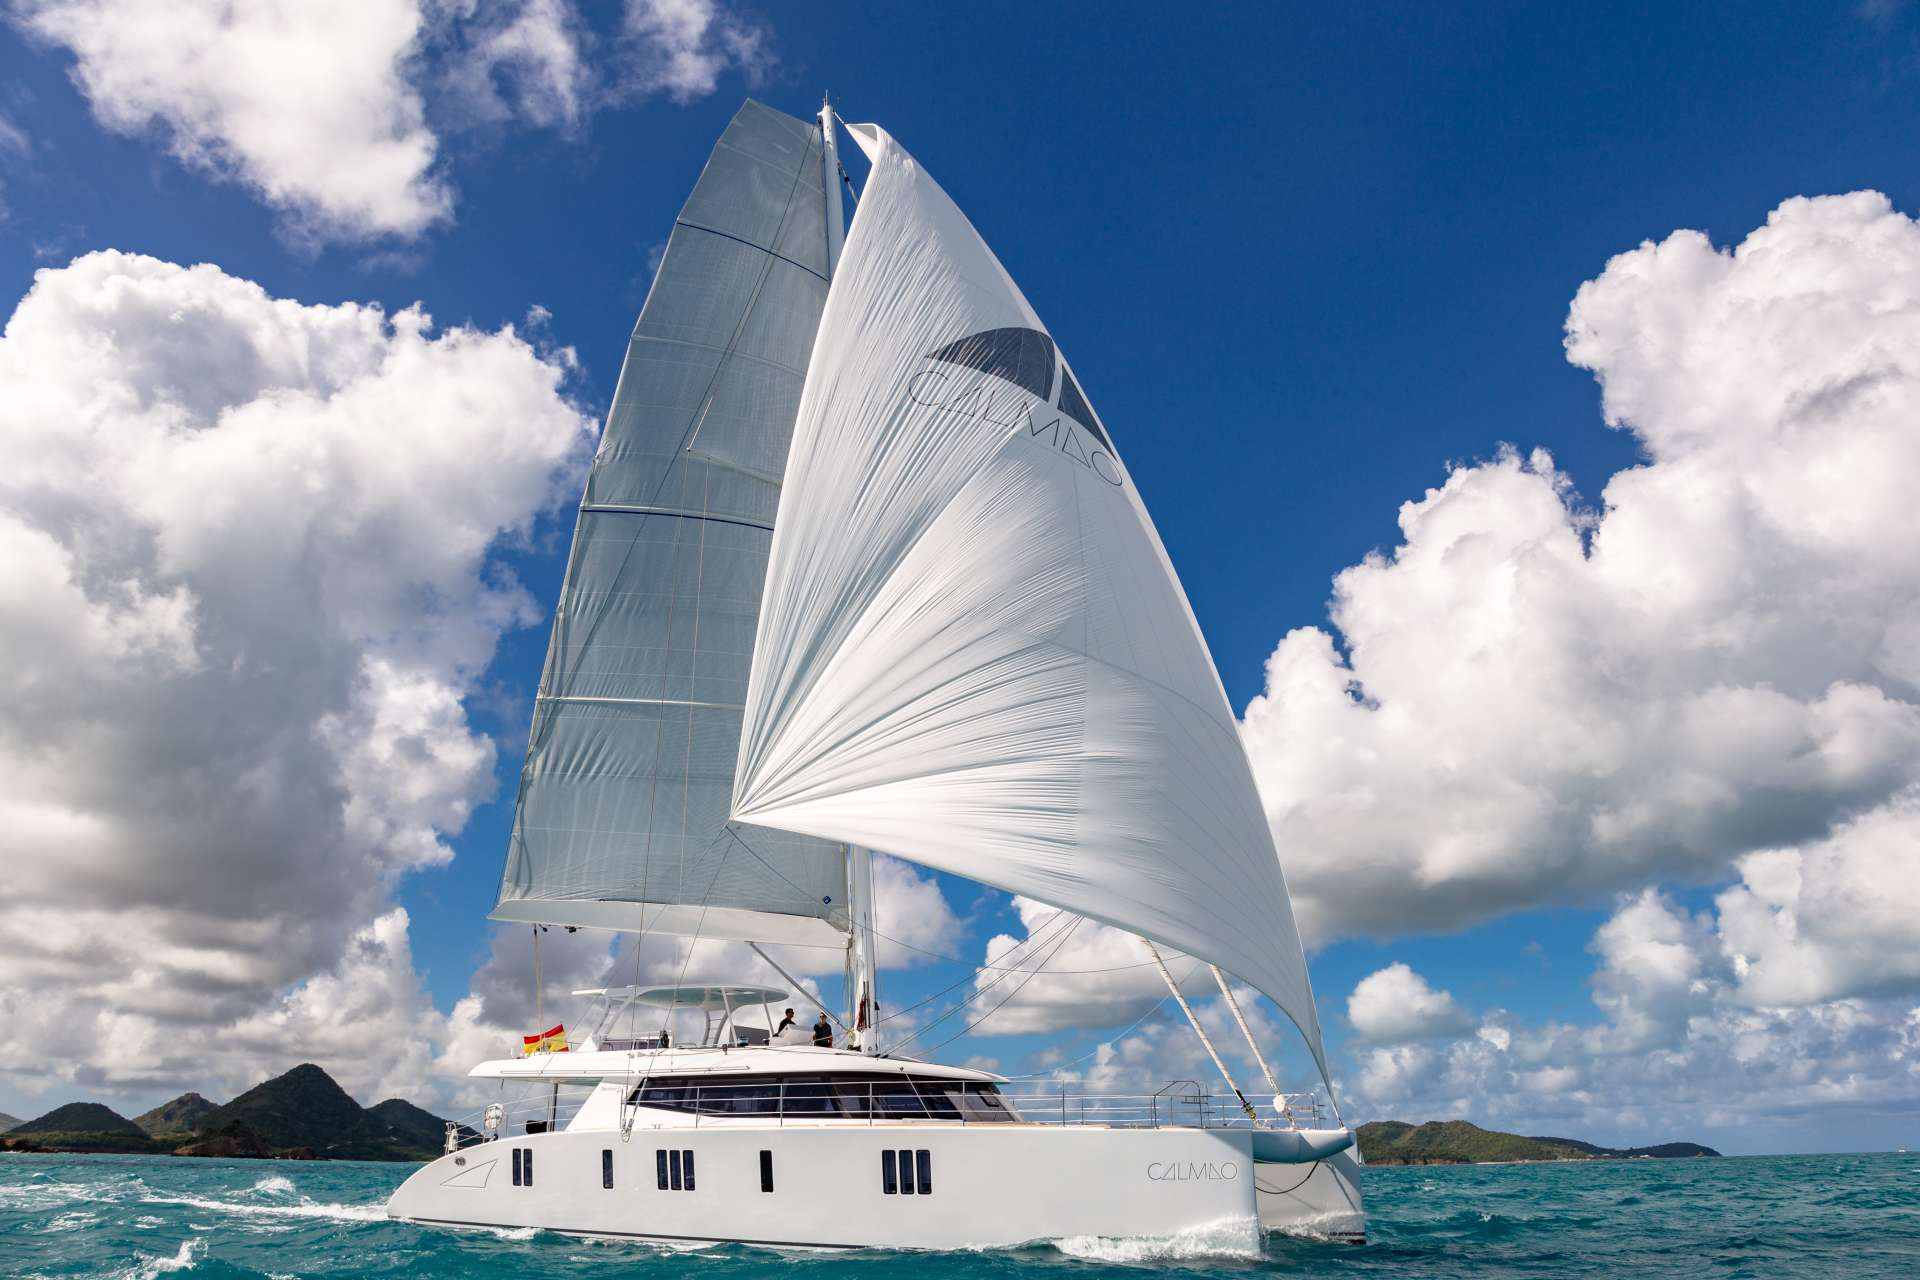 Charter with CALMAO on compassyachtcharters.com